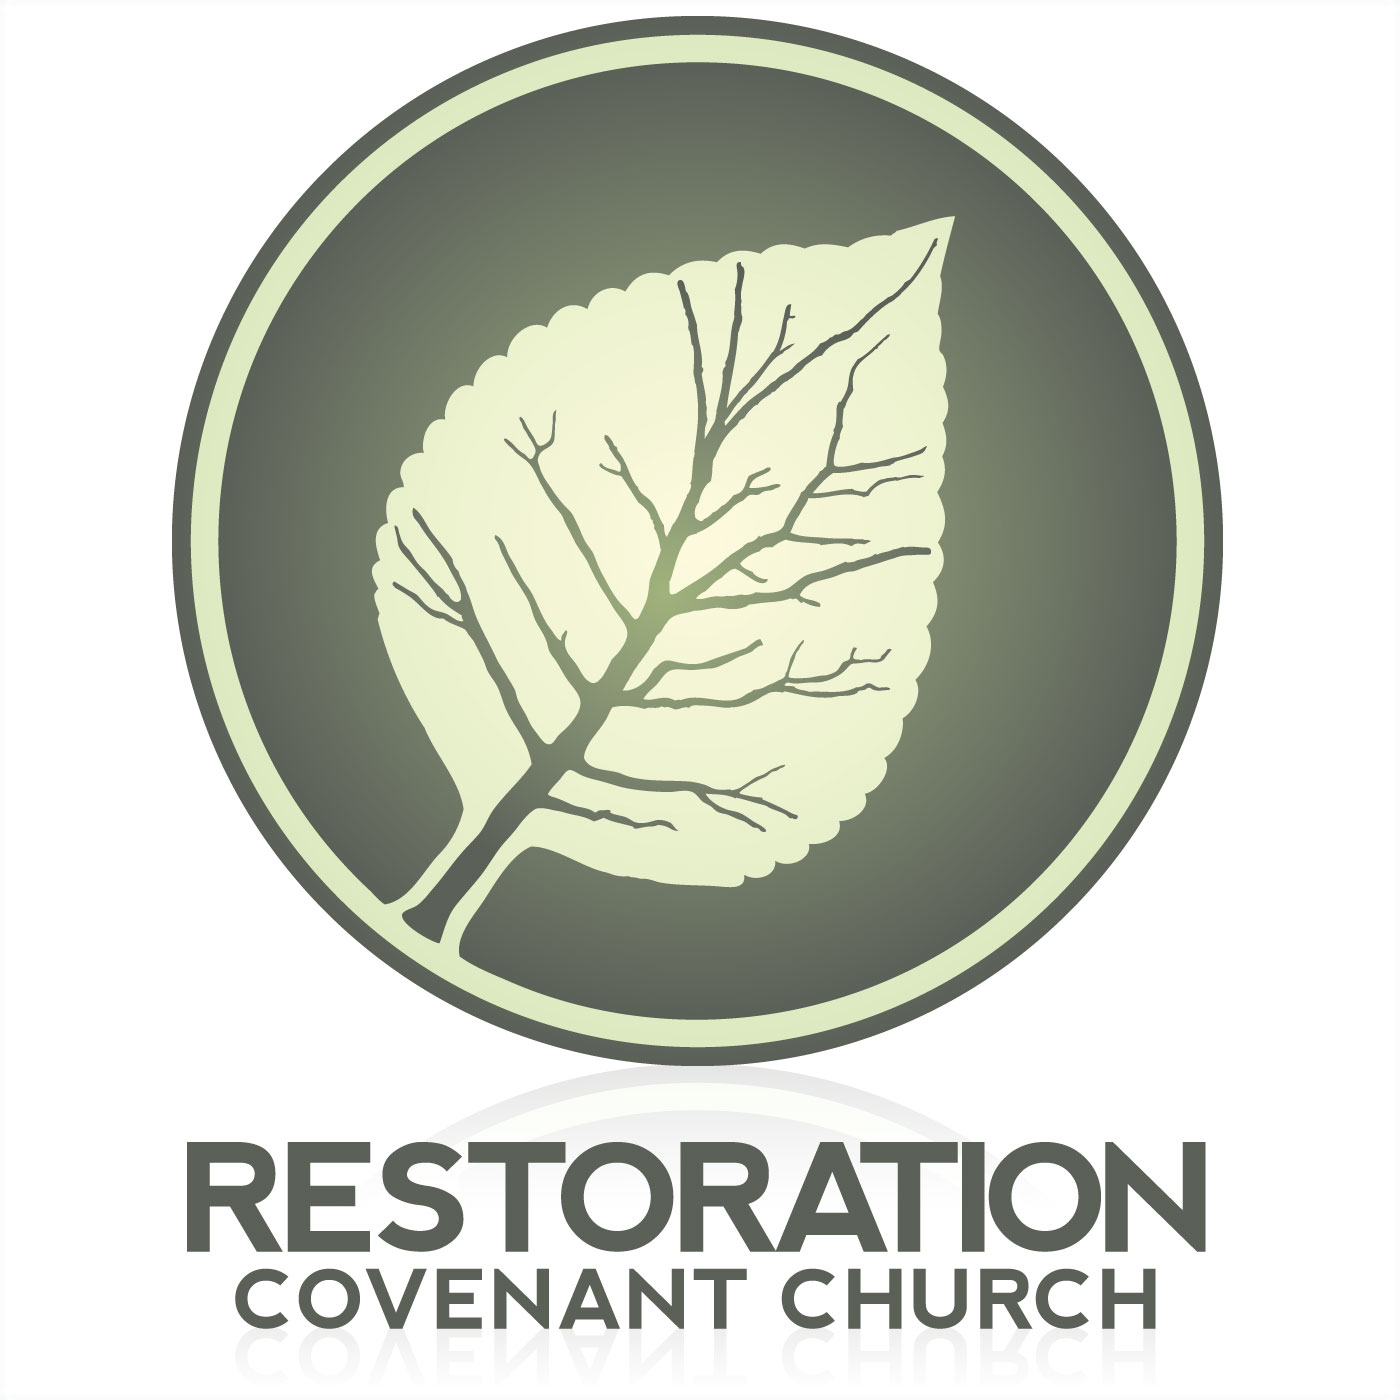 Restoration Covenant Church